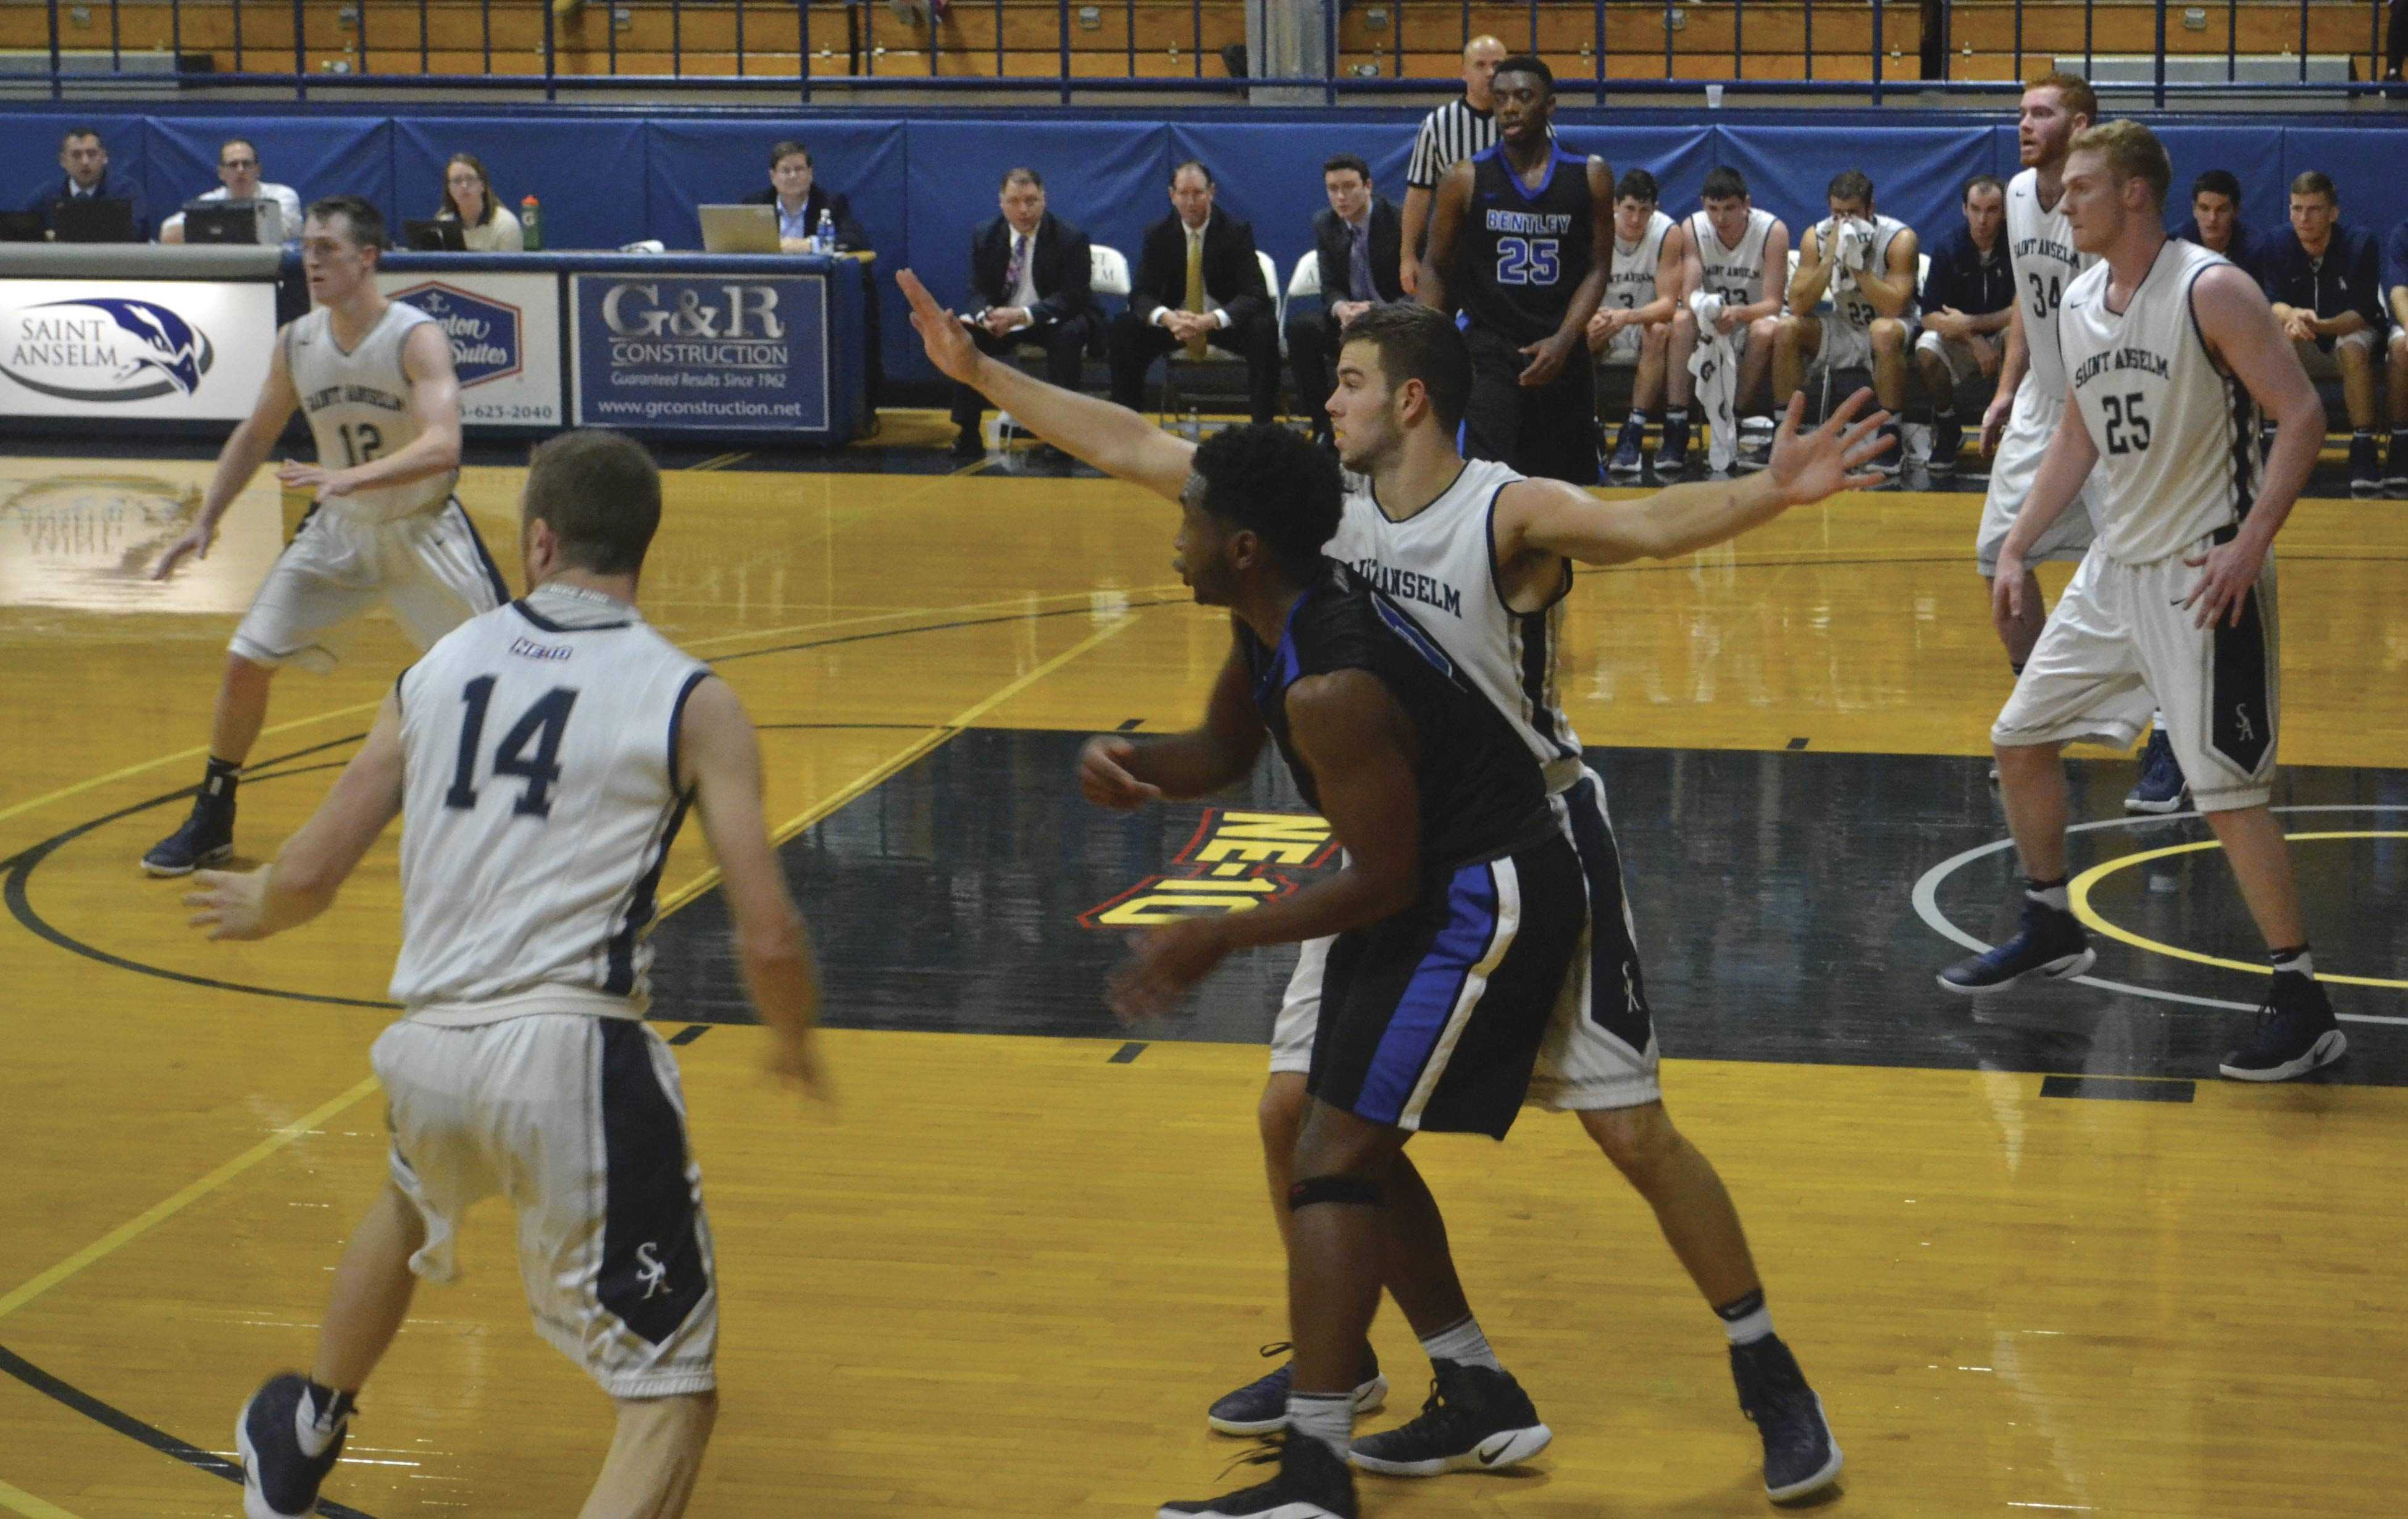 Men's basketball running an offensive play in a victory against Bentley Nov. 30.